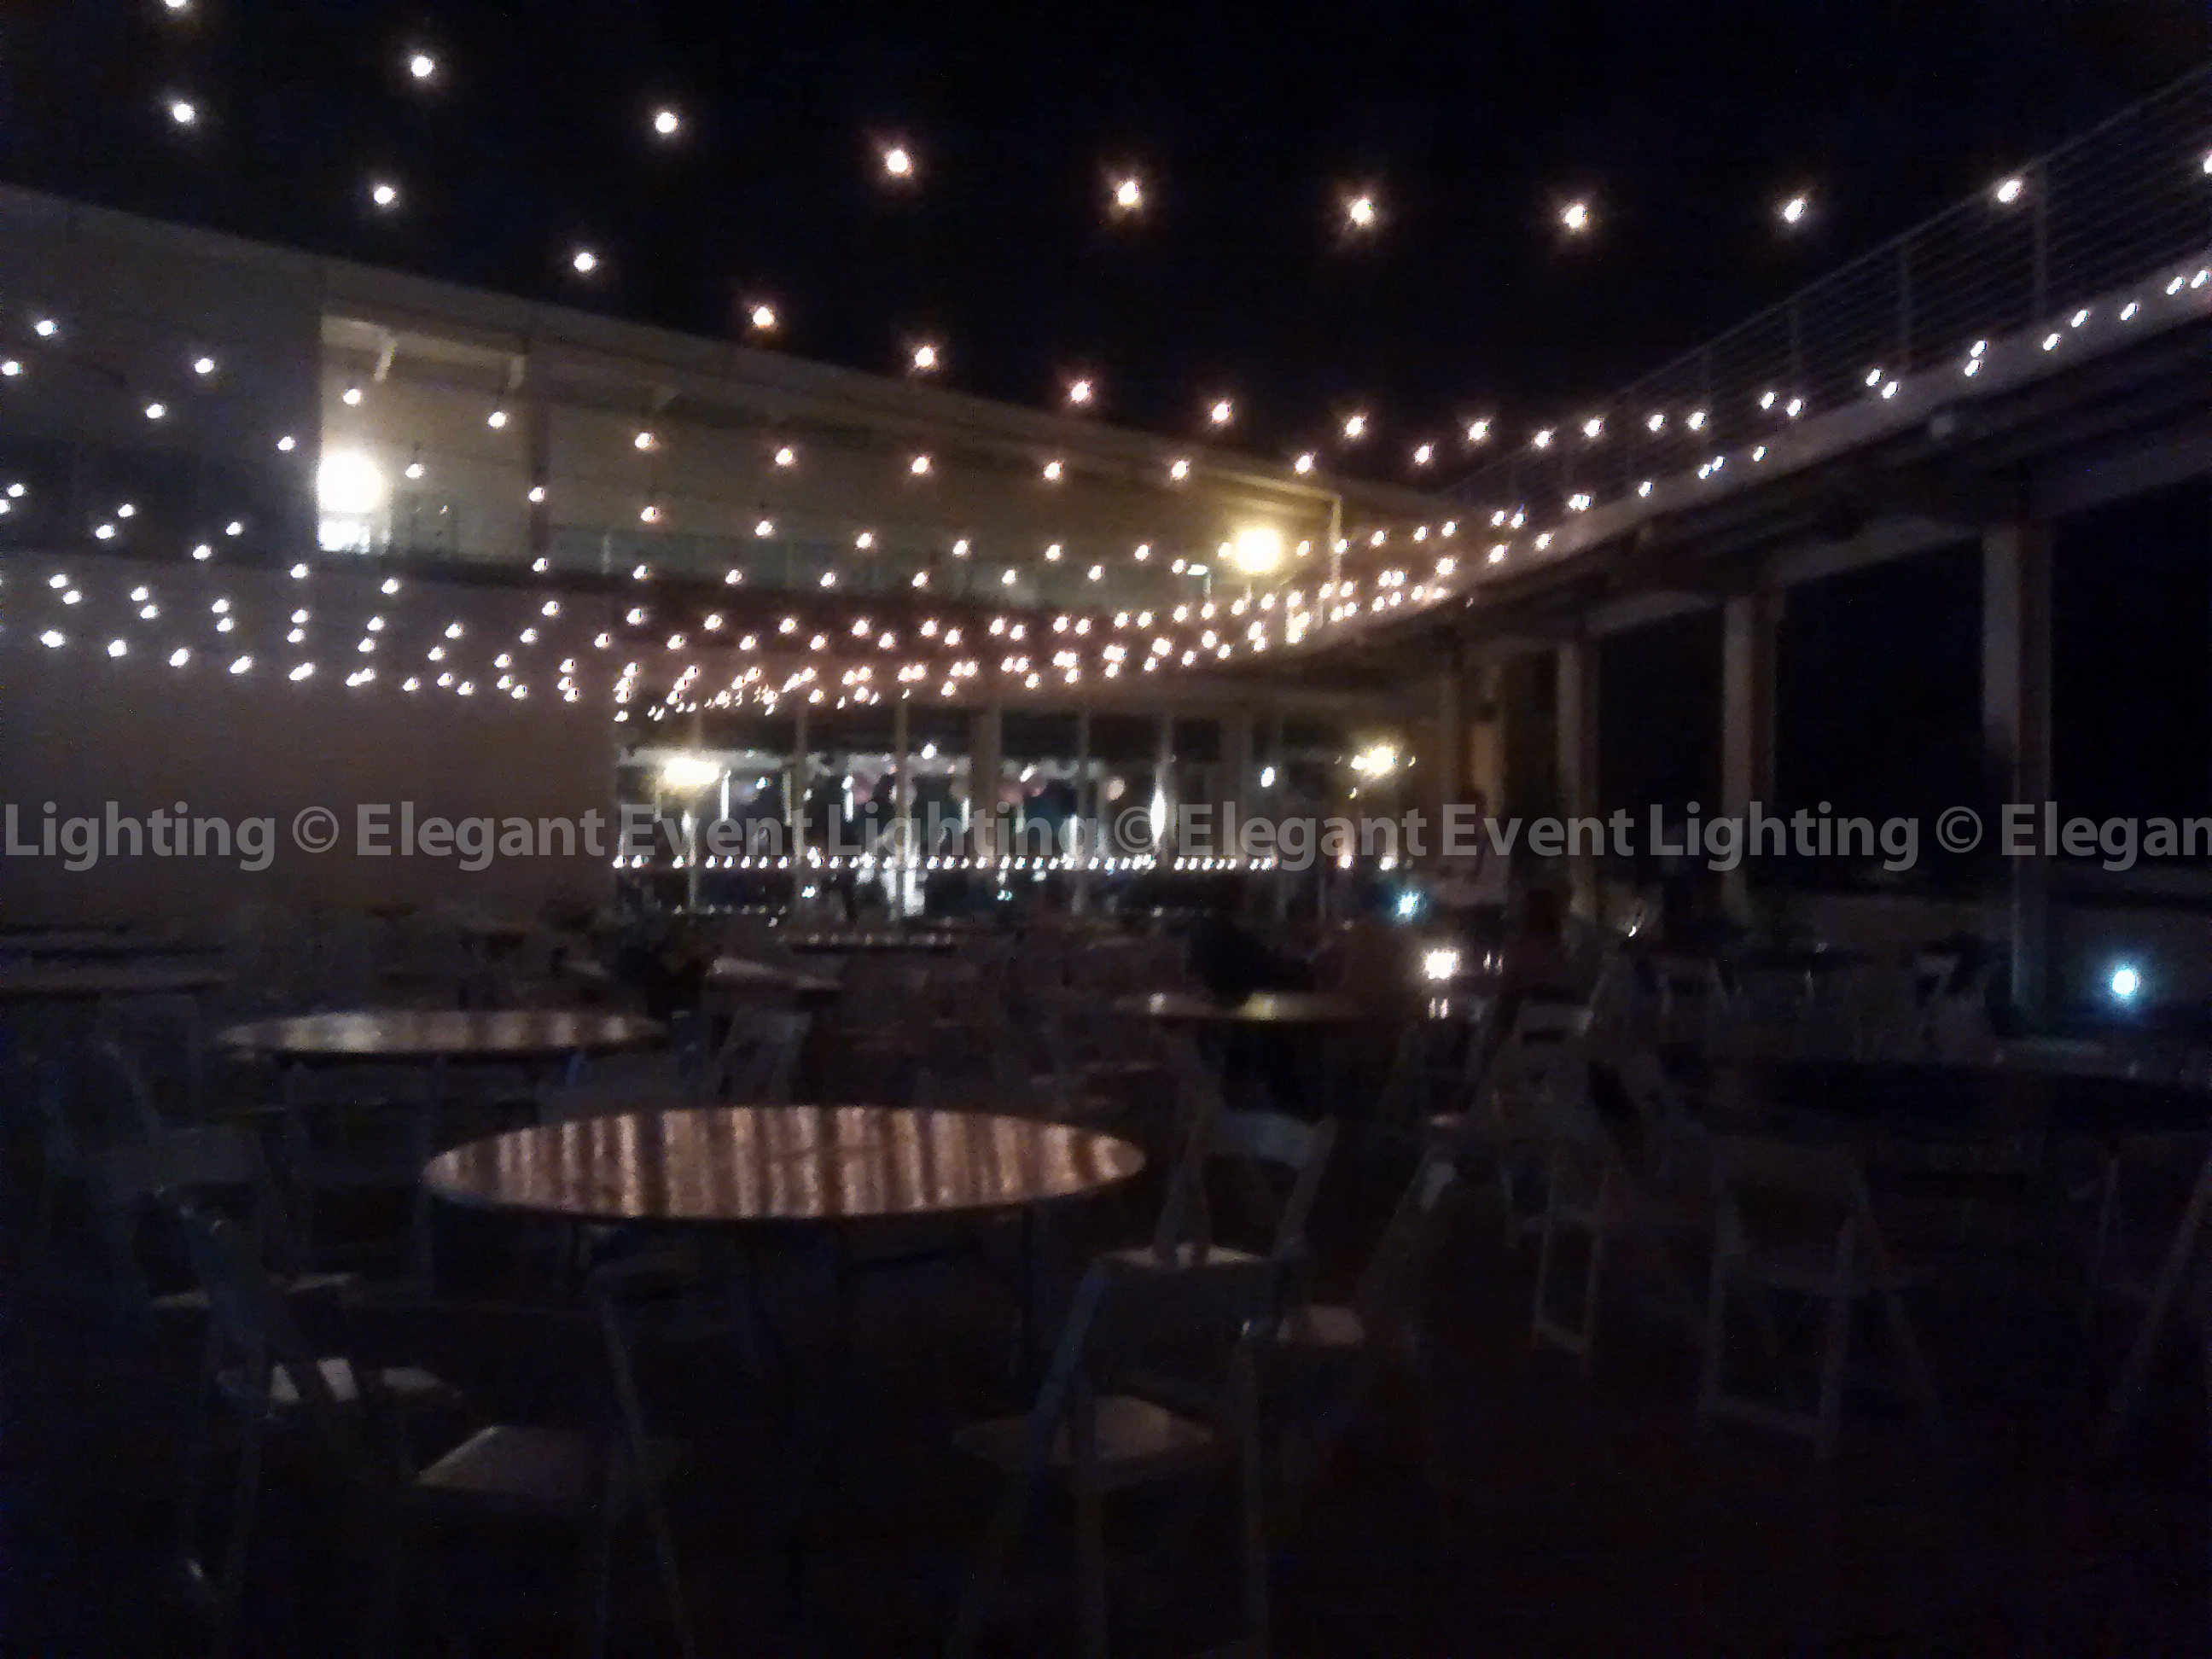 Italian Hanging String Lights : EEL Chicago Year in Review Caf? Globe Italian String LightsElegant Event Lighting